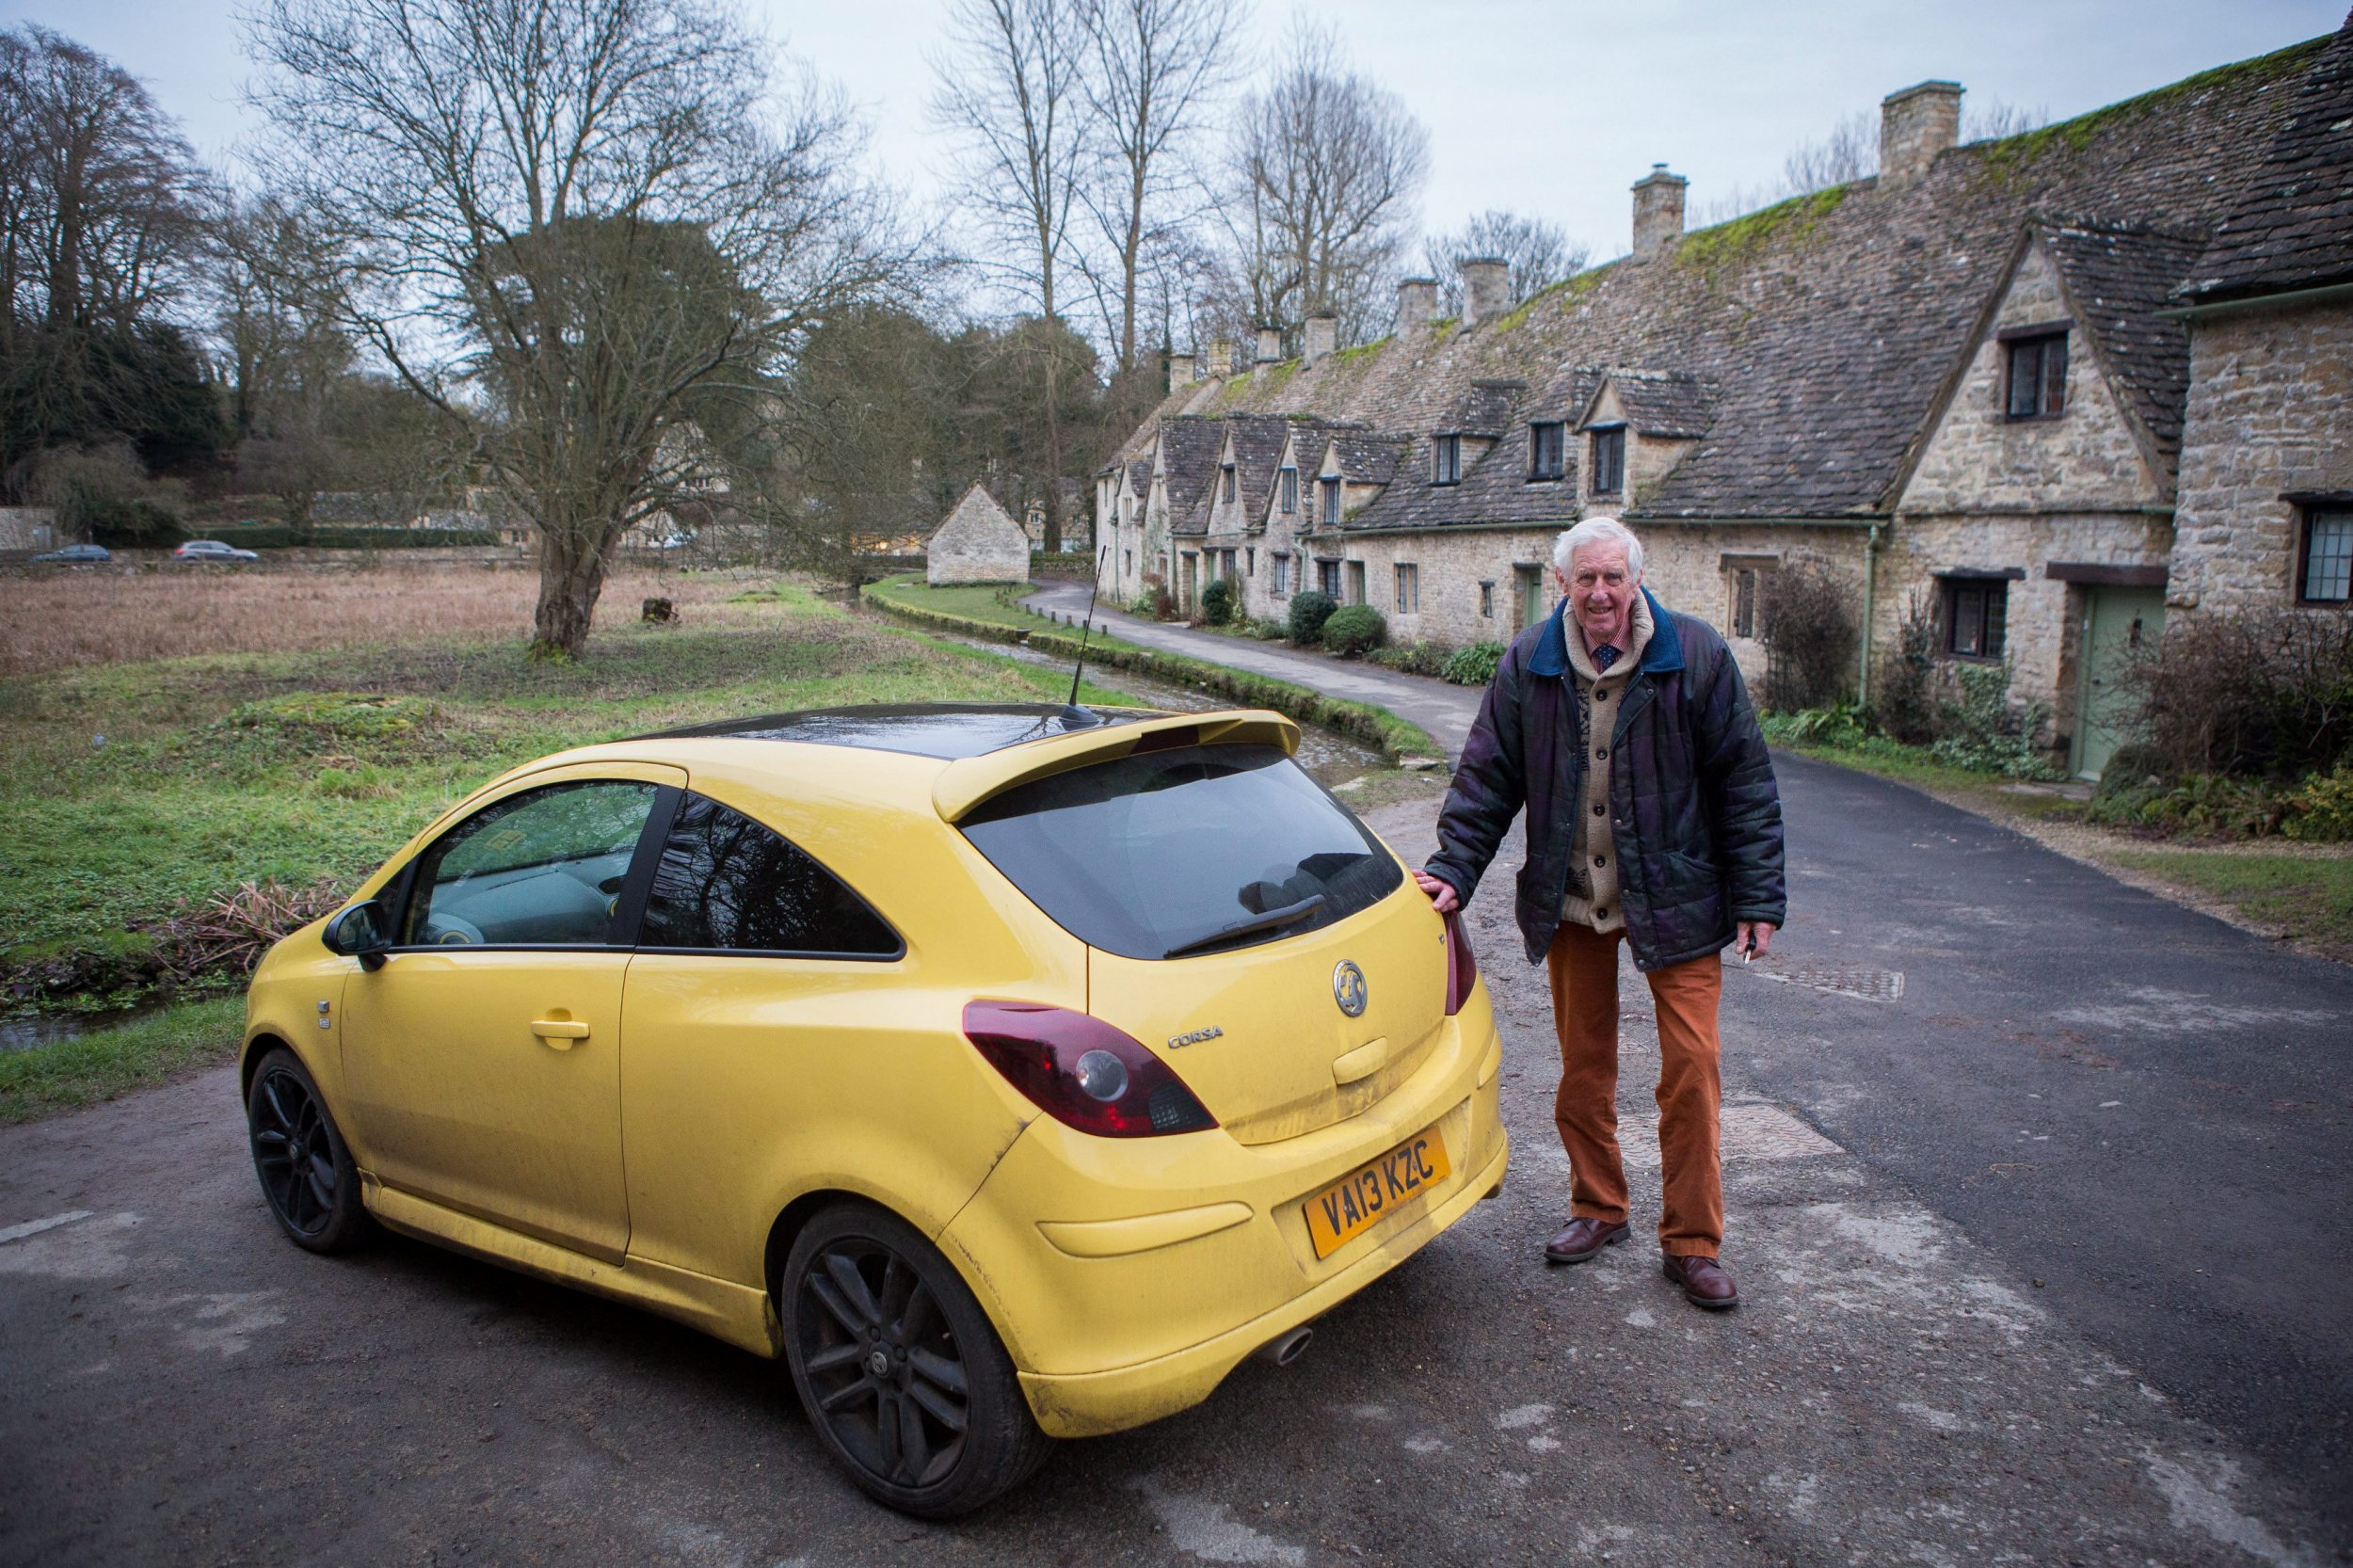 'Ugly' yellow car famous for ruining pretty landscape vandalised